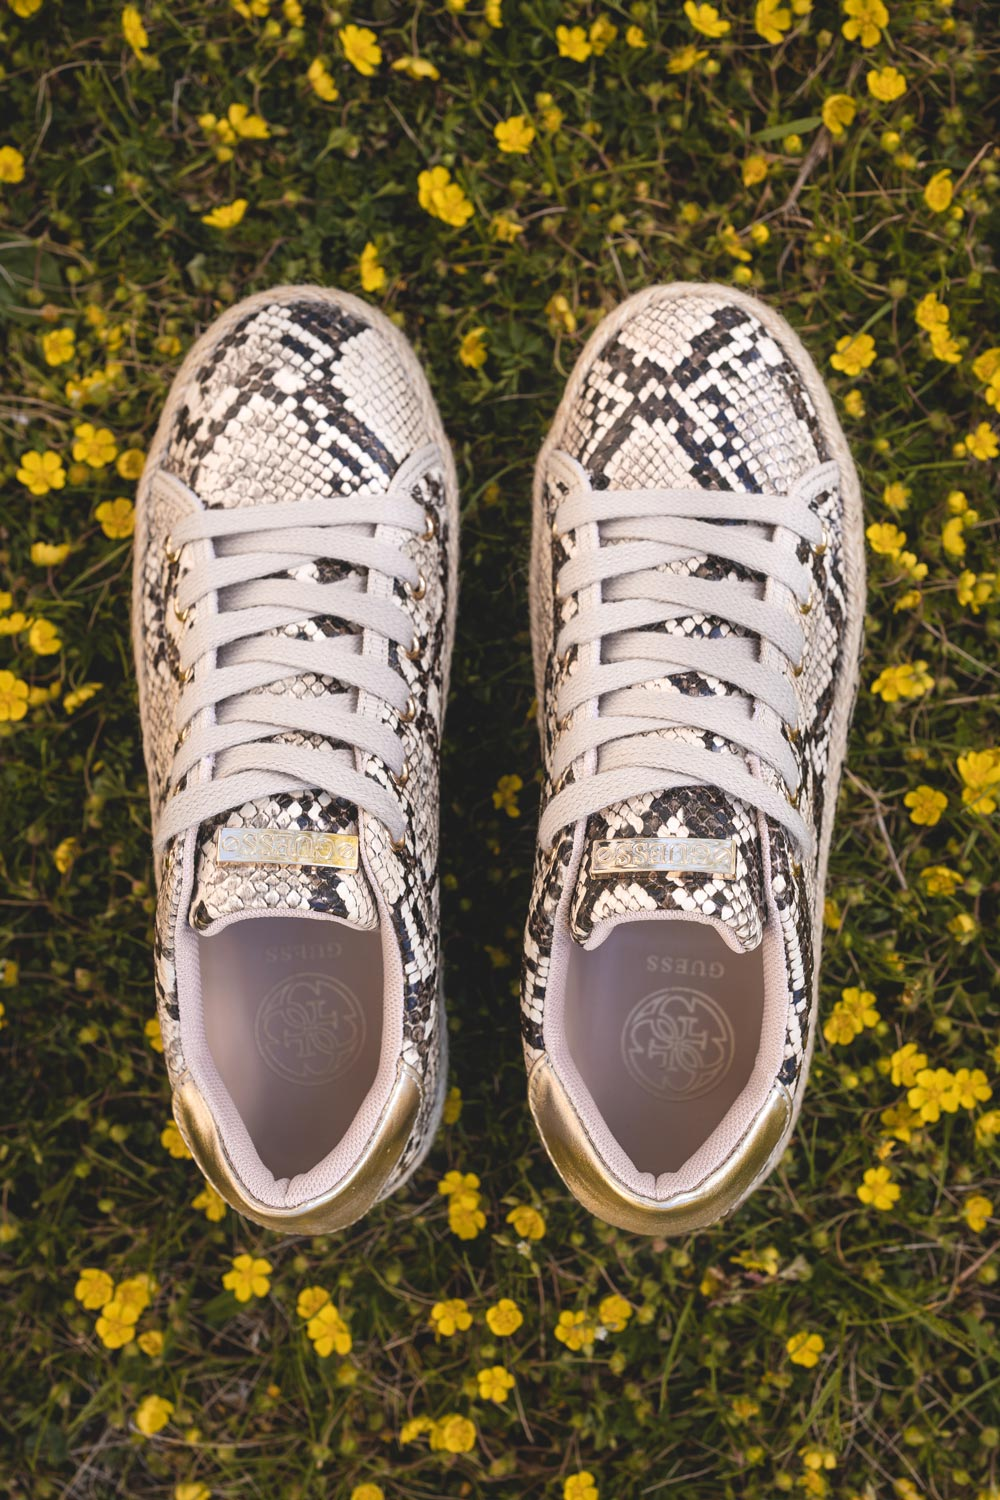 Guess jute sneakers on a snake skin